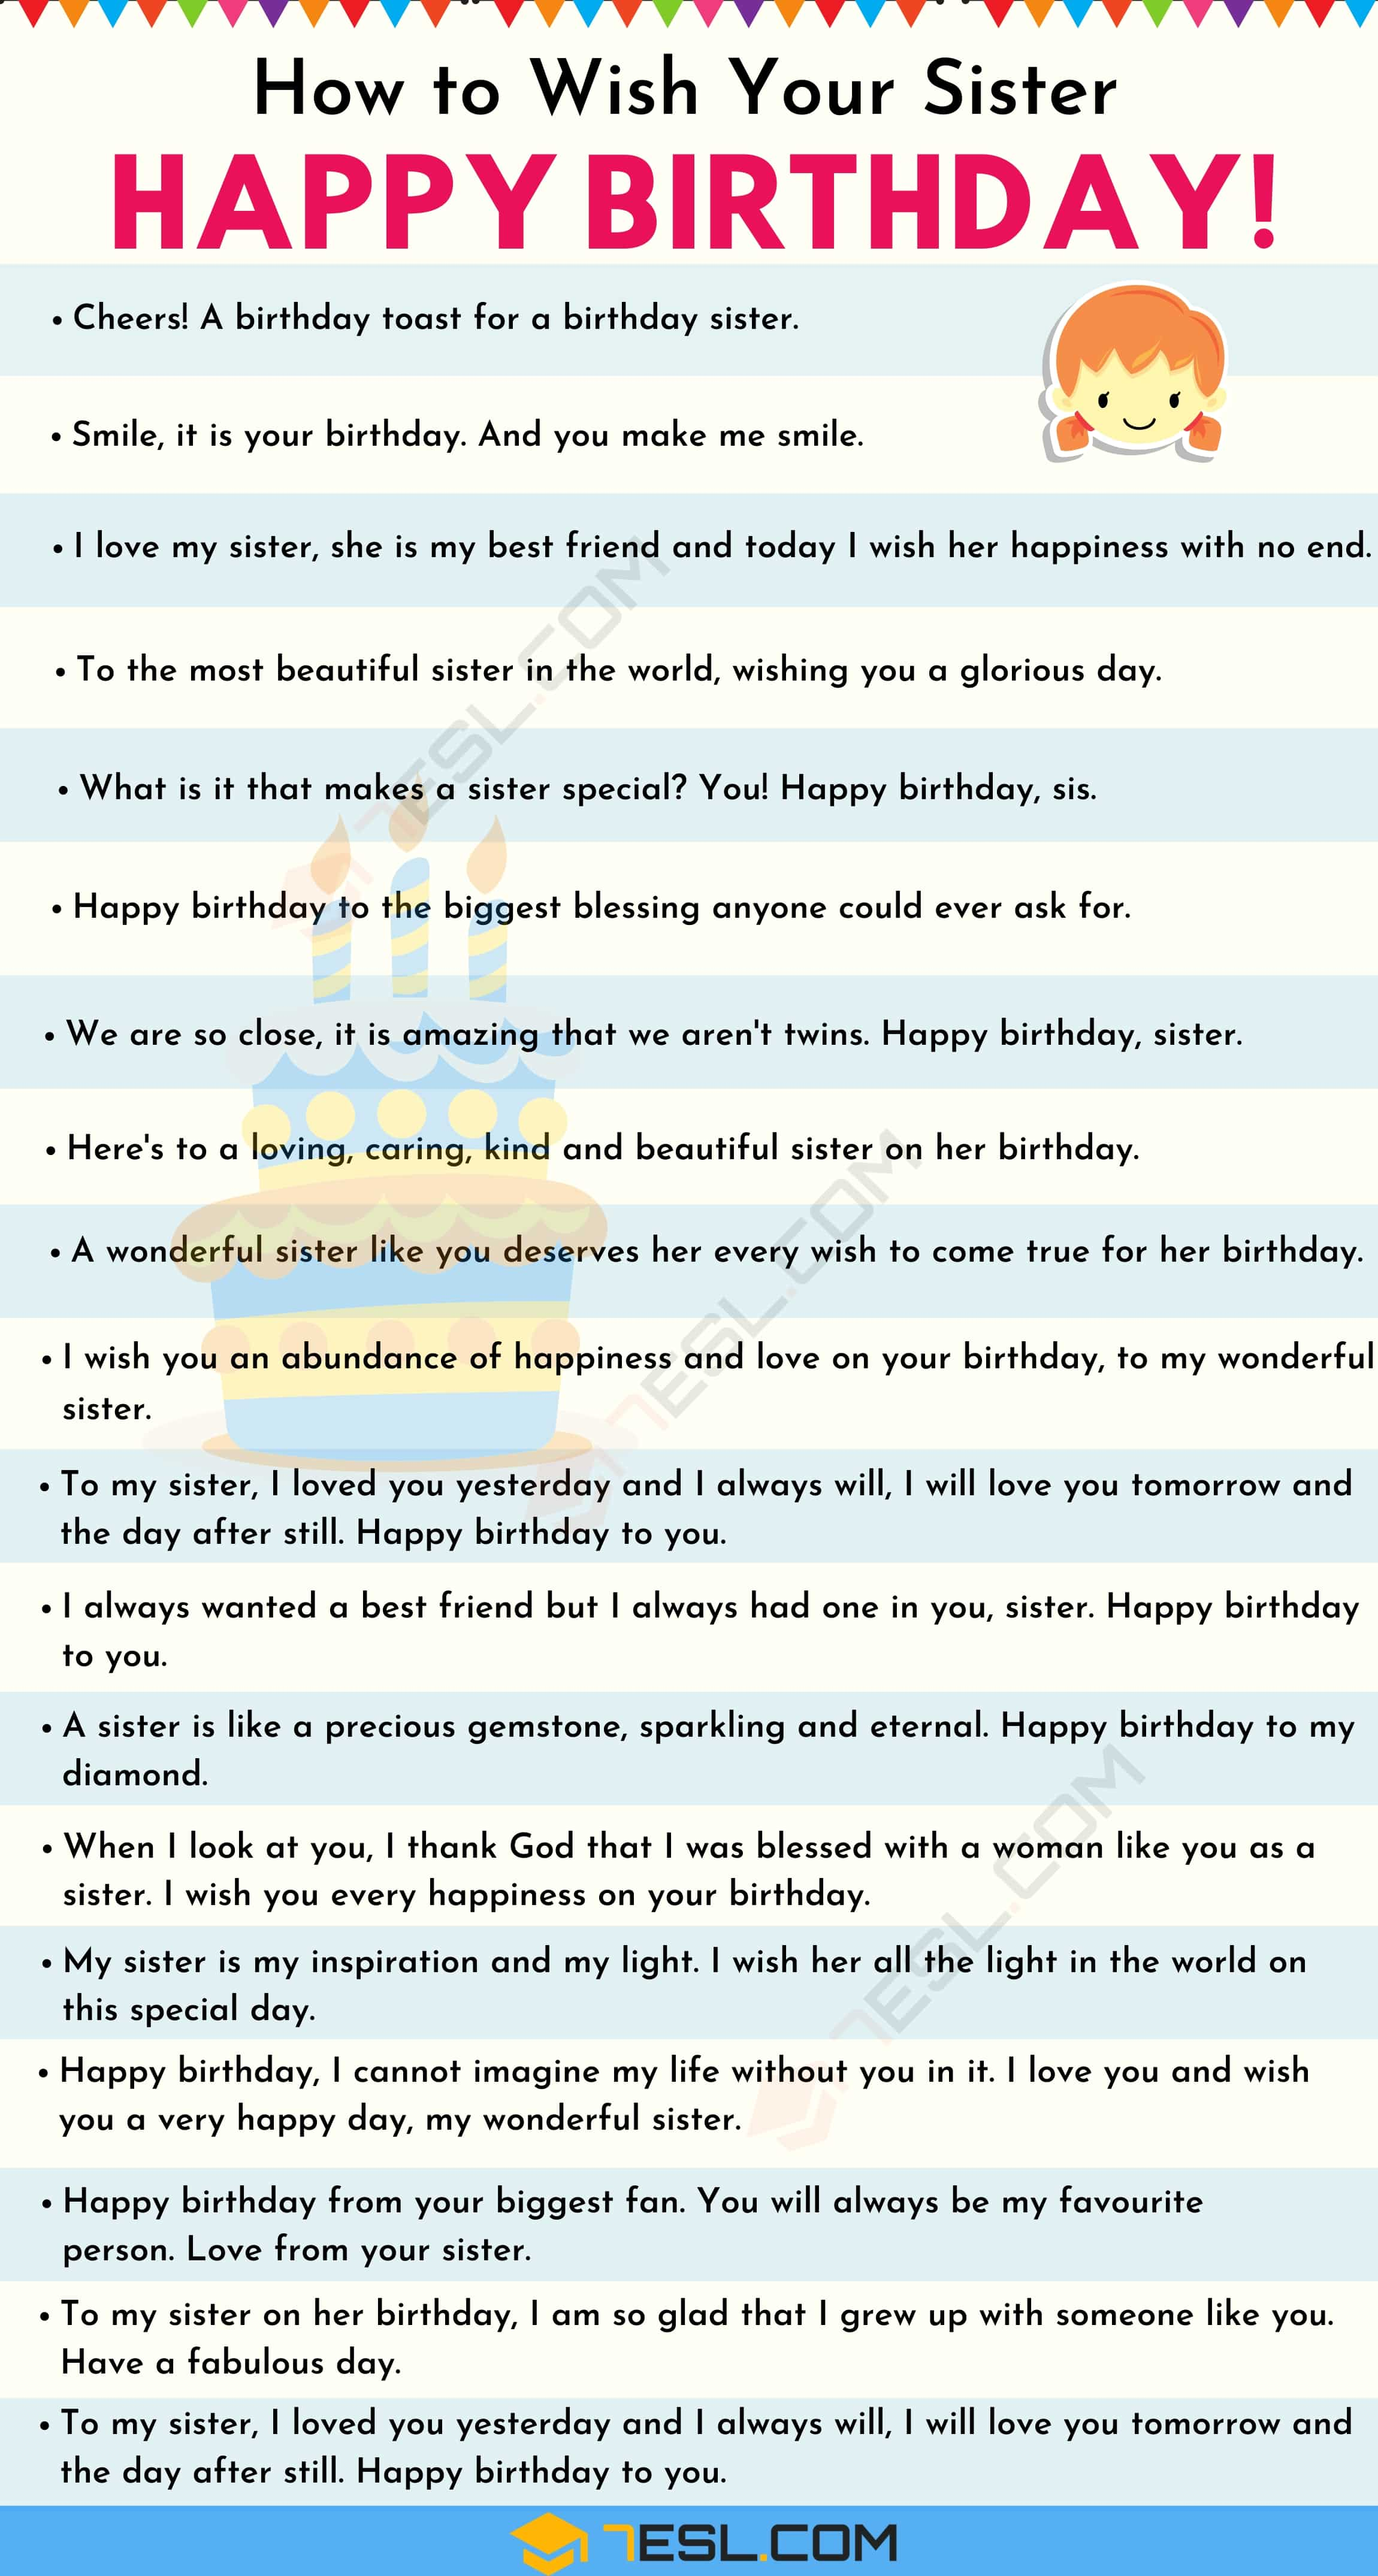 List of birthday wishes for your sister